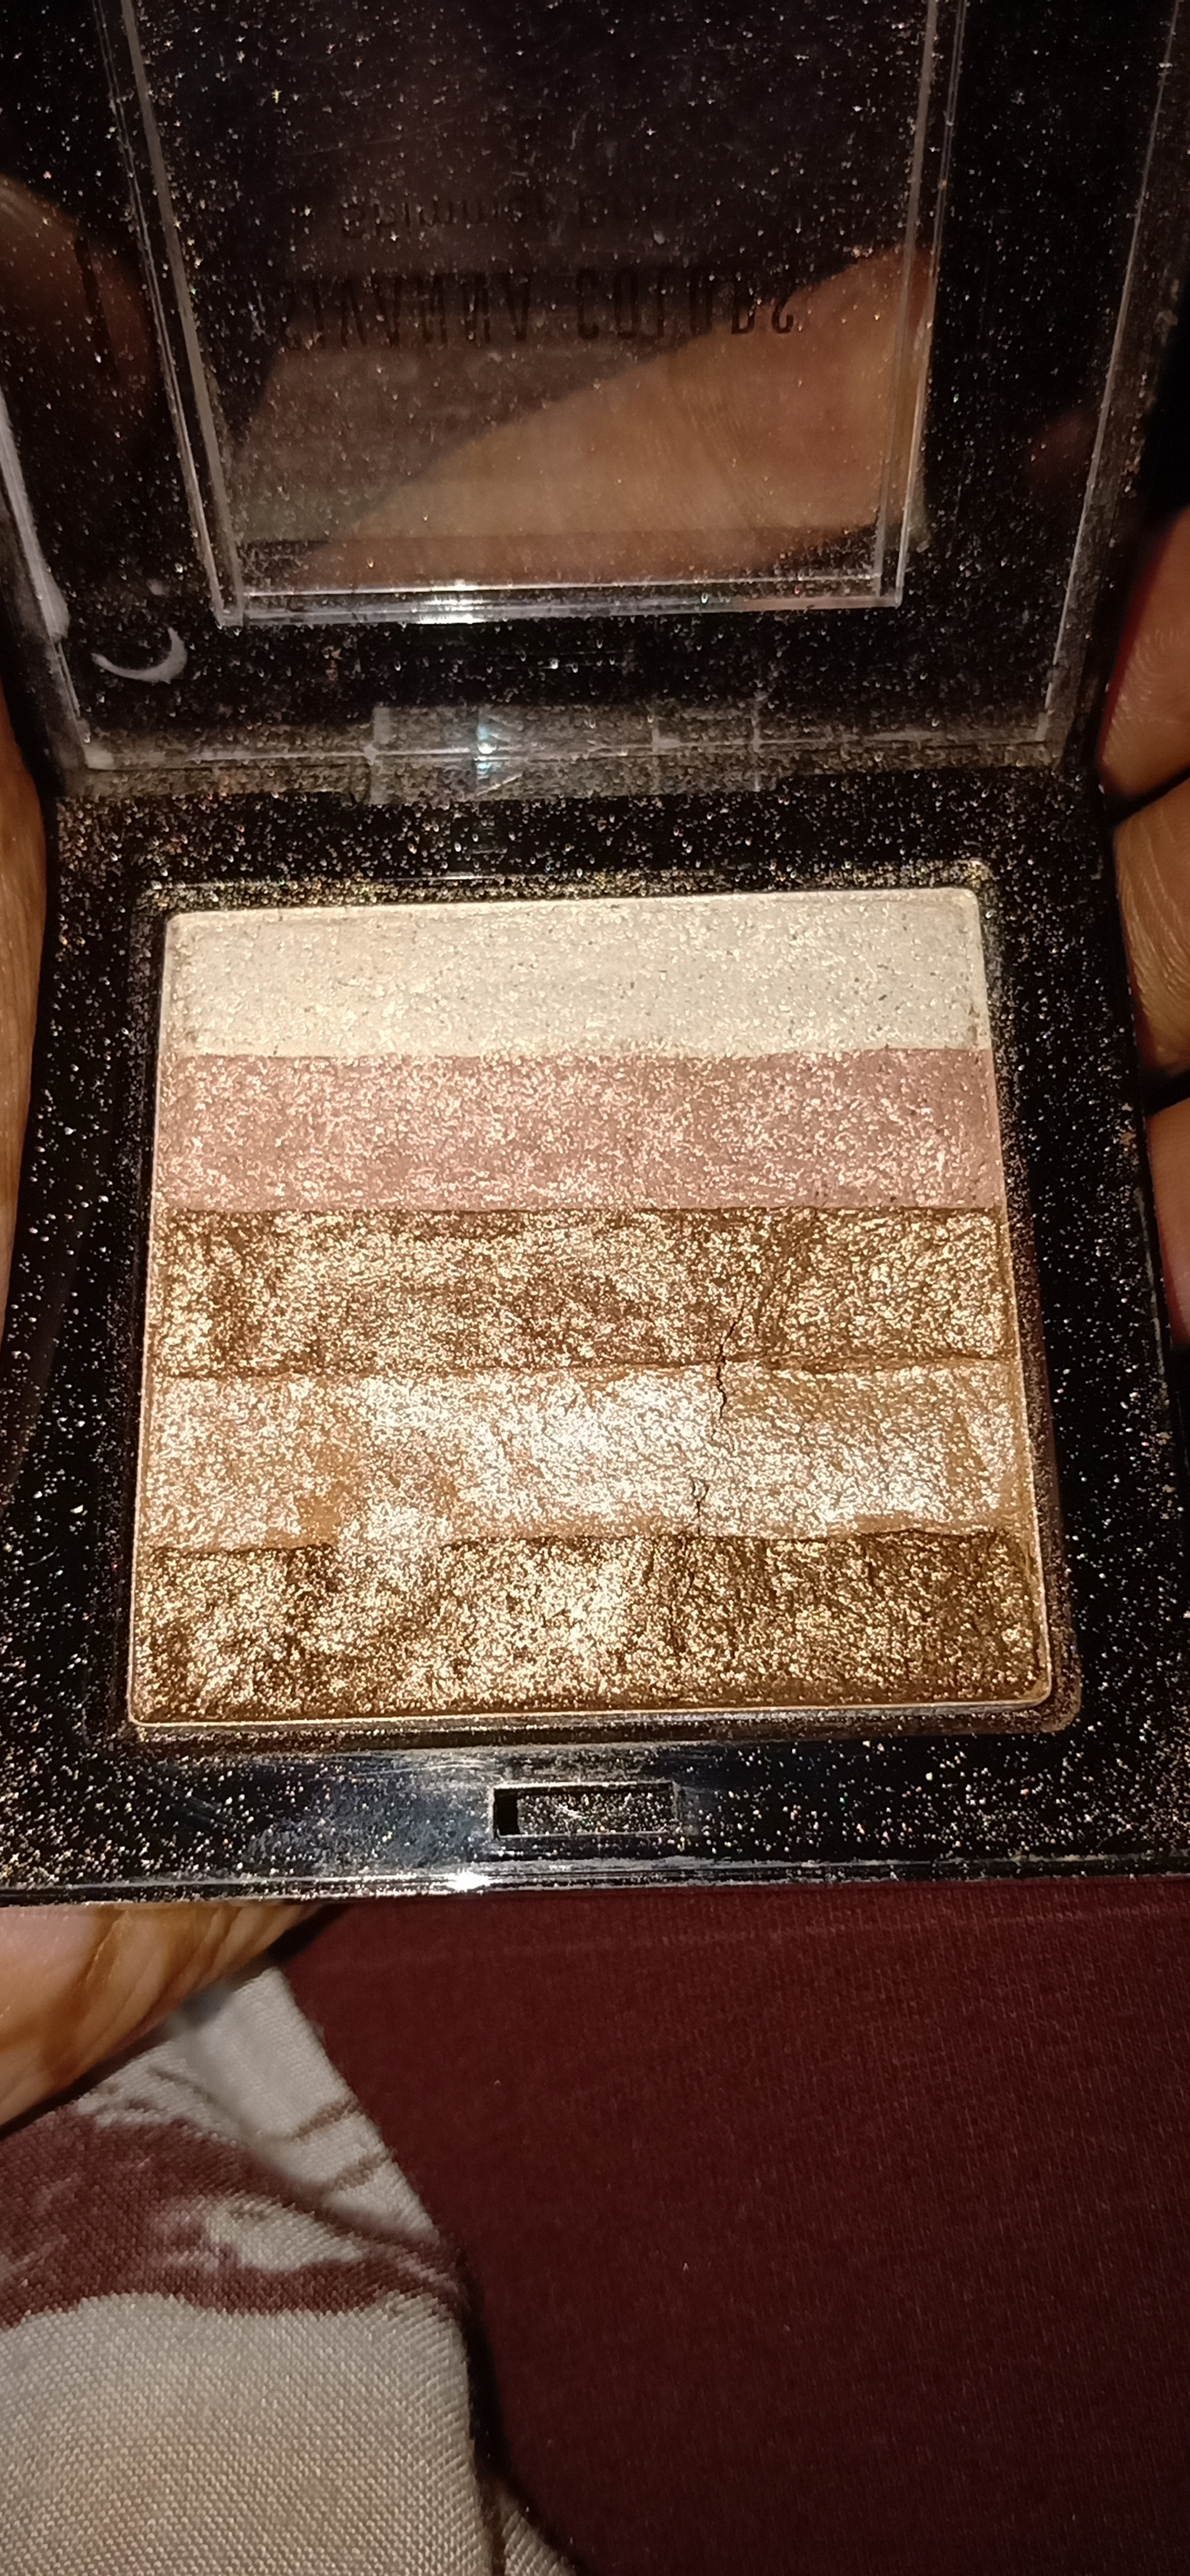 Sivanna Shimmer Highlighter-My favourite-By rehab12-2